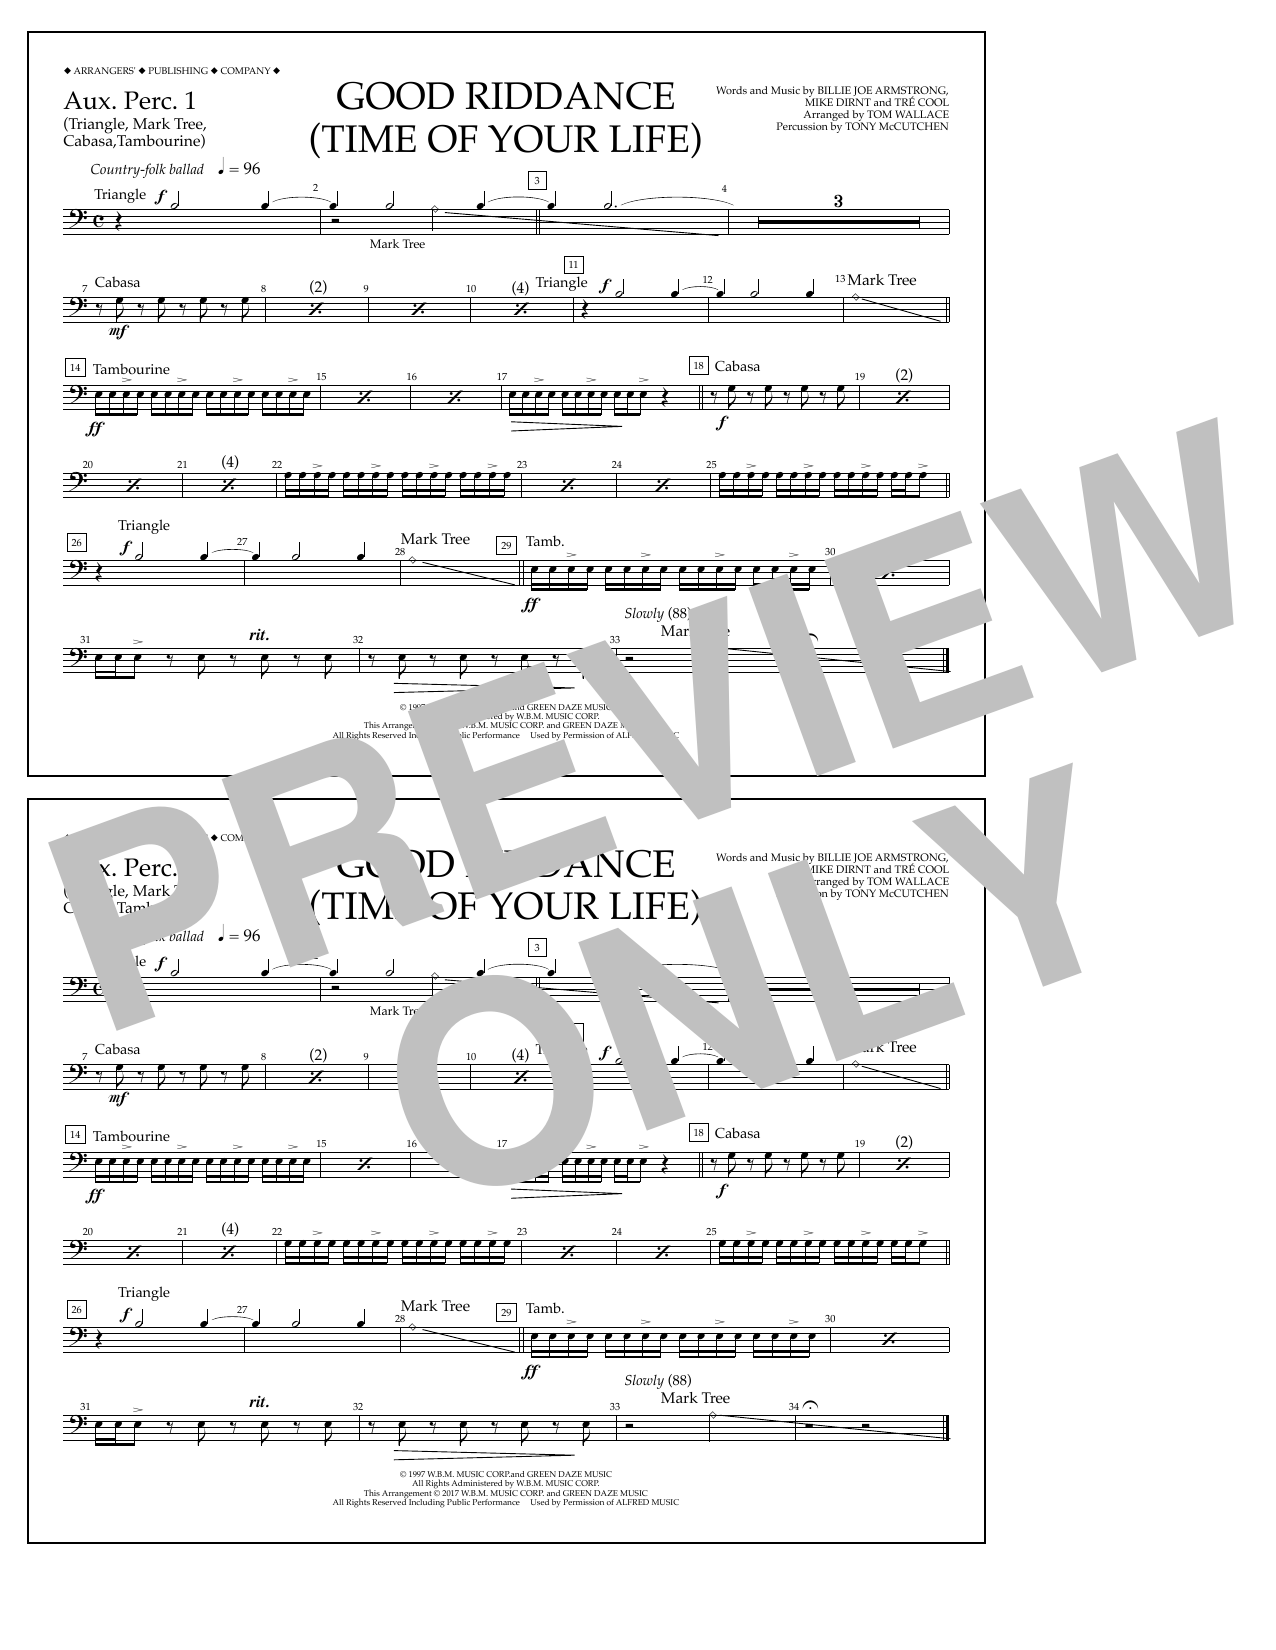 Good Riddance (Time of Your Life) - Aux. Perc. 1 Sheet Music